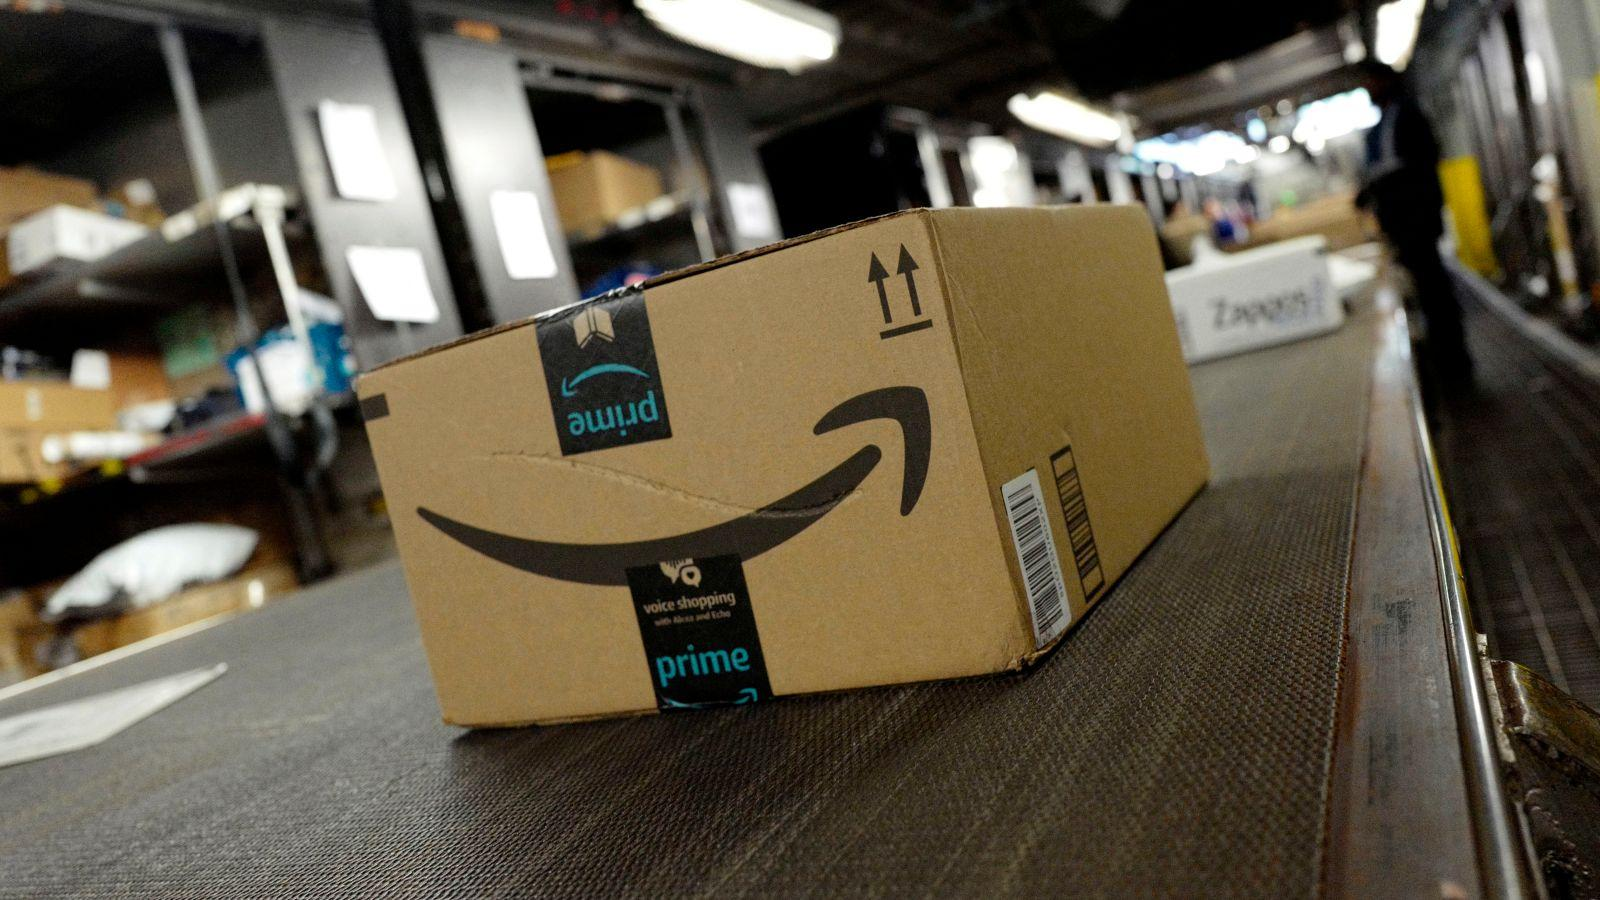 Amazon workers in Europe go on strike during Prime Day